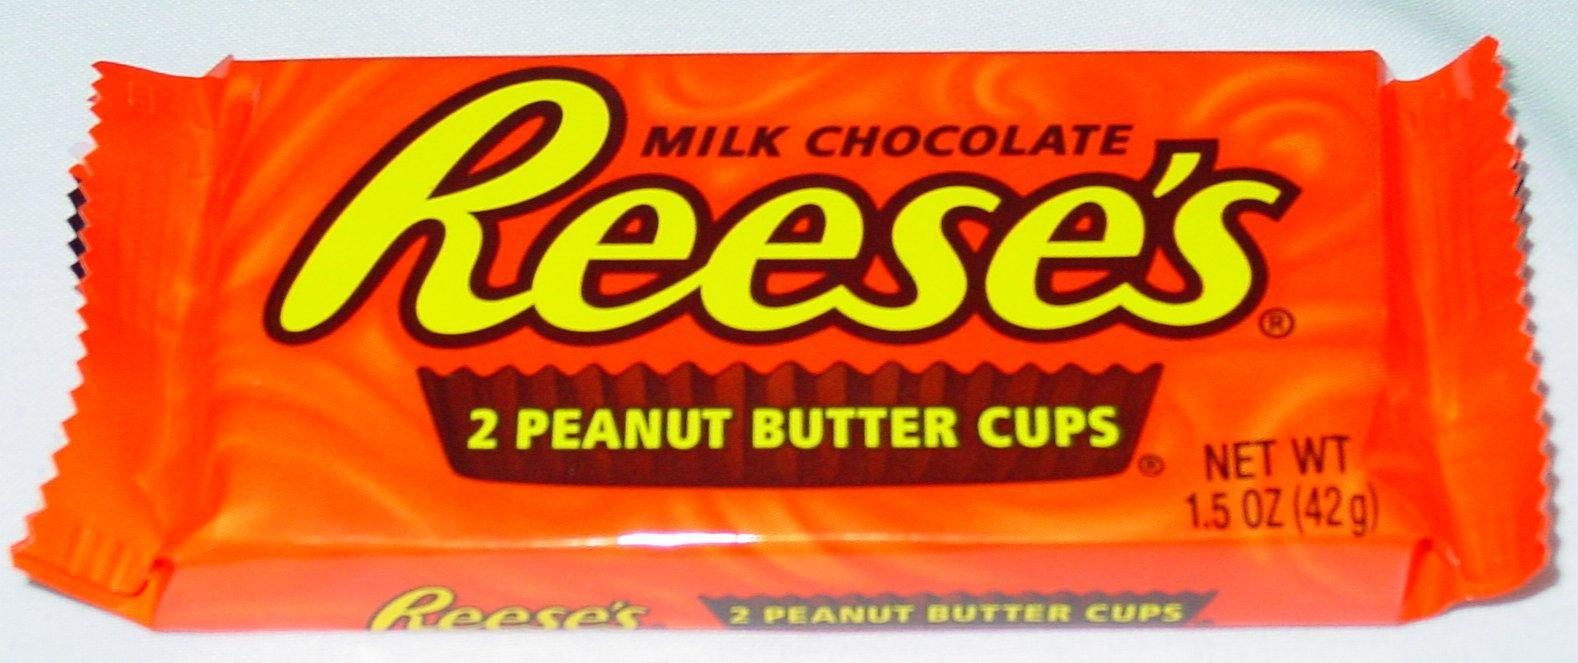 reeses-peanut-butter-cup.jpg